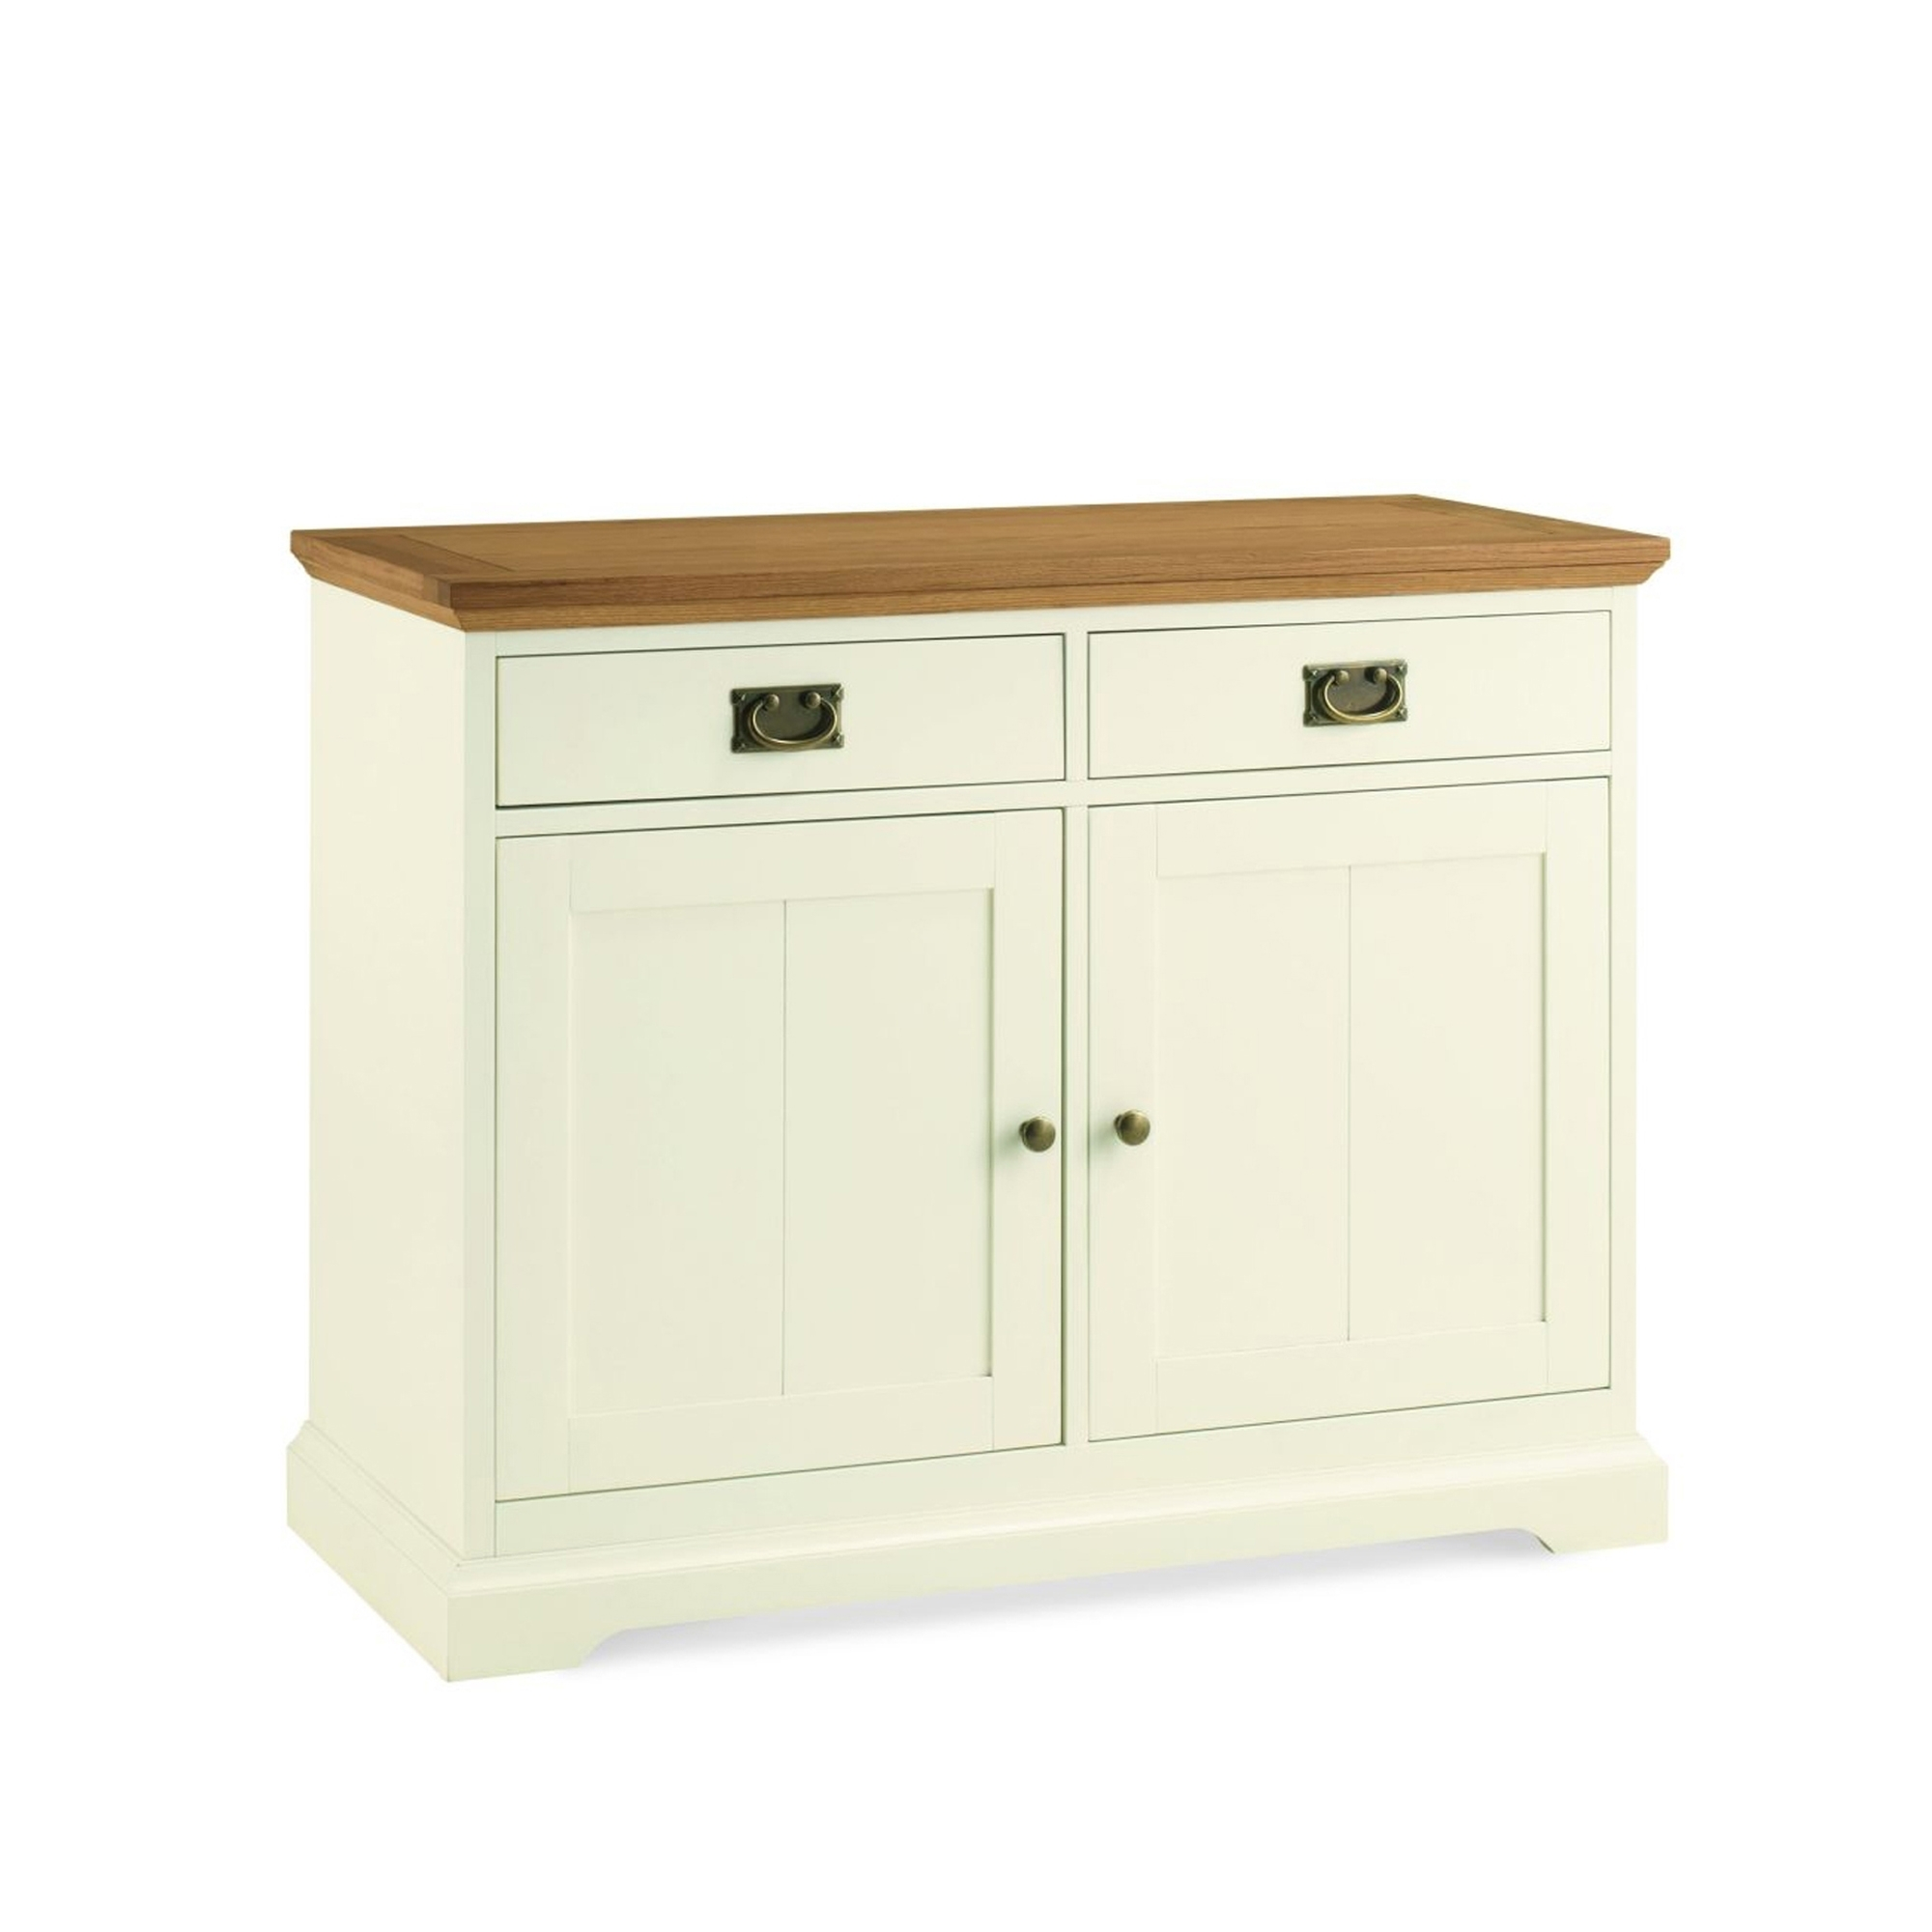 Cookes collection romana two tone narrow sideboard for Sideboard romina